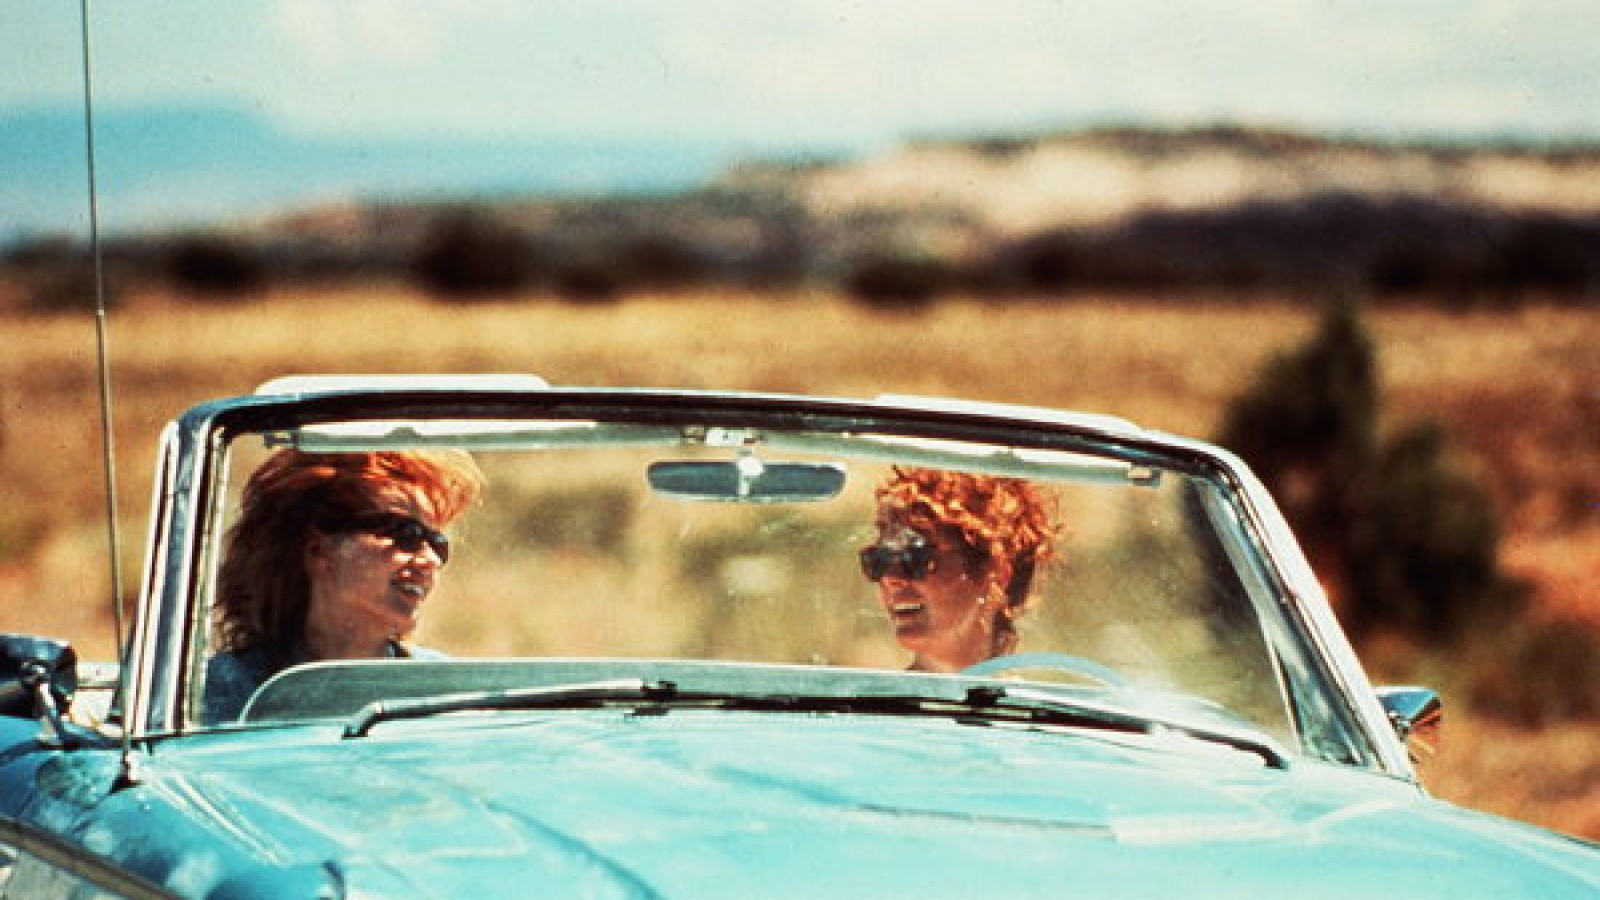 Spend your Valentine's Day with Thelma & Louise